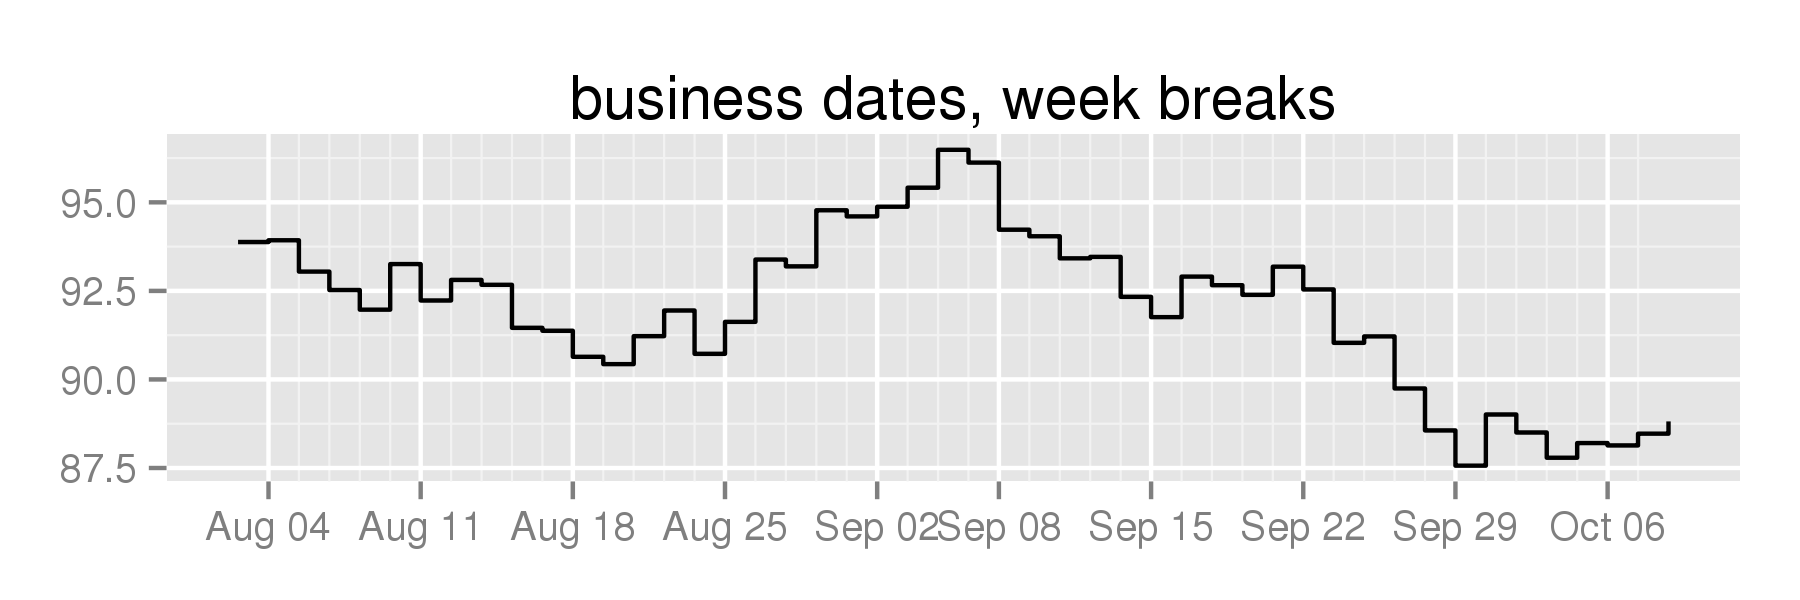 business dates, week breaks